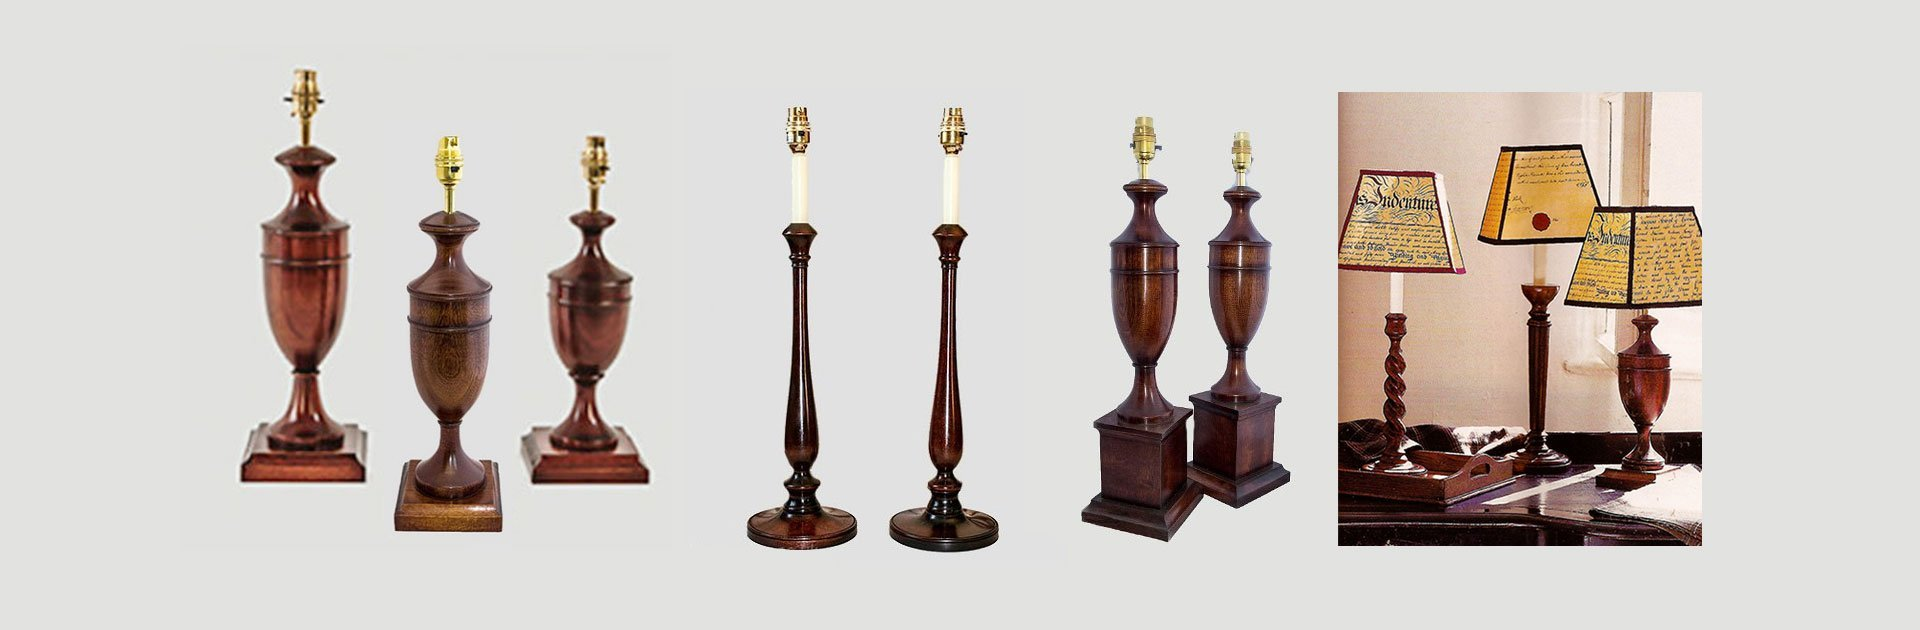 Traditional  wooden lamps of different periods